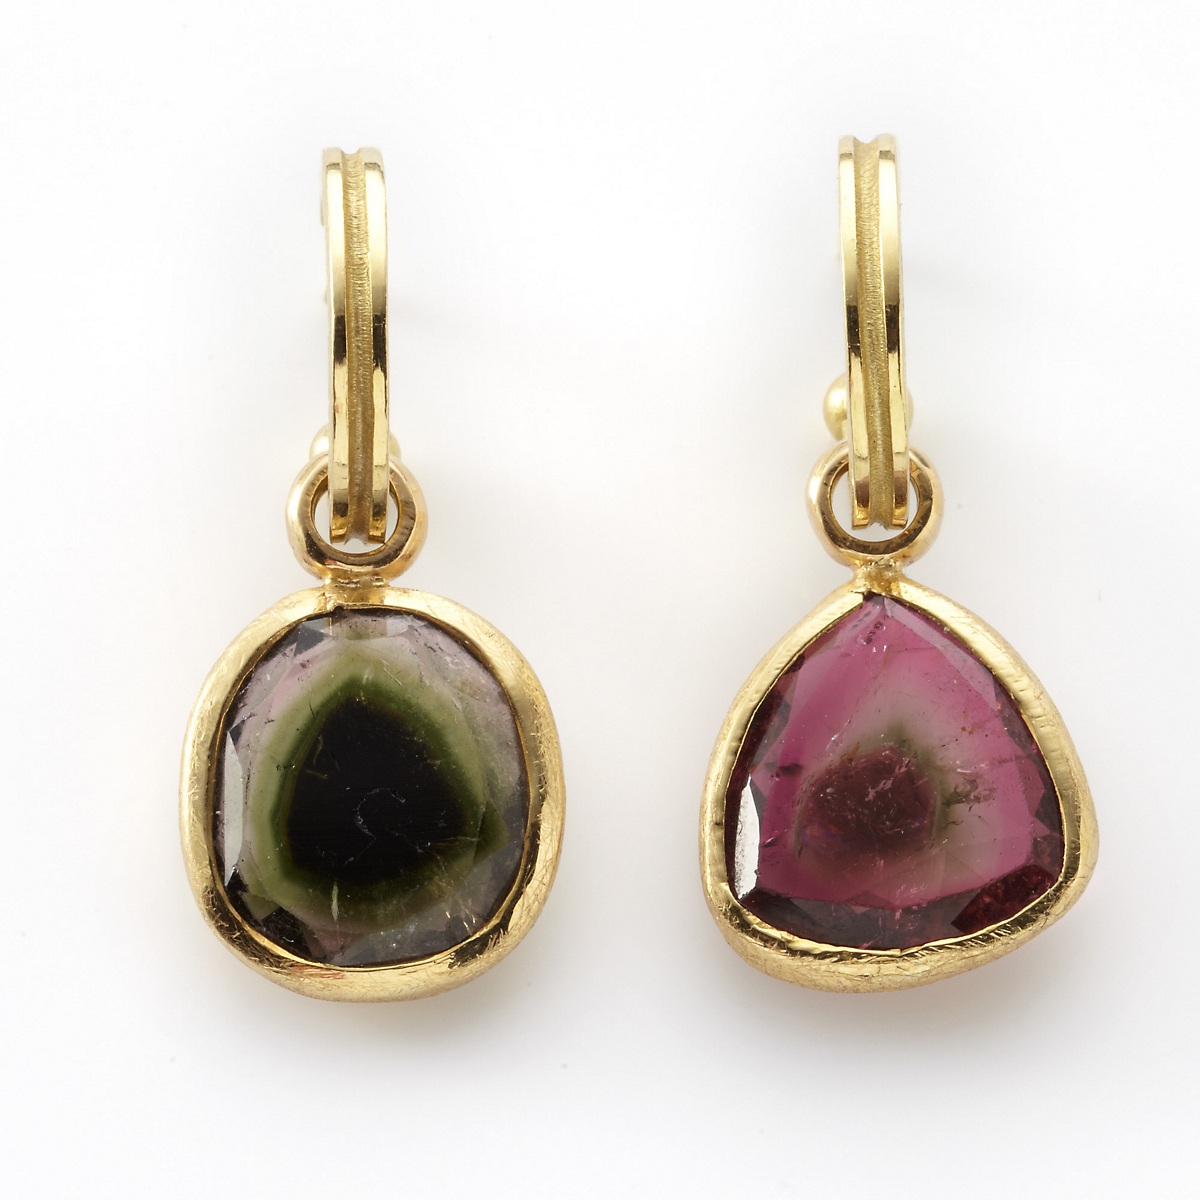 Barbara Heinrich Watermelon Tourmaline Earrings